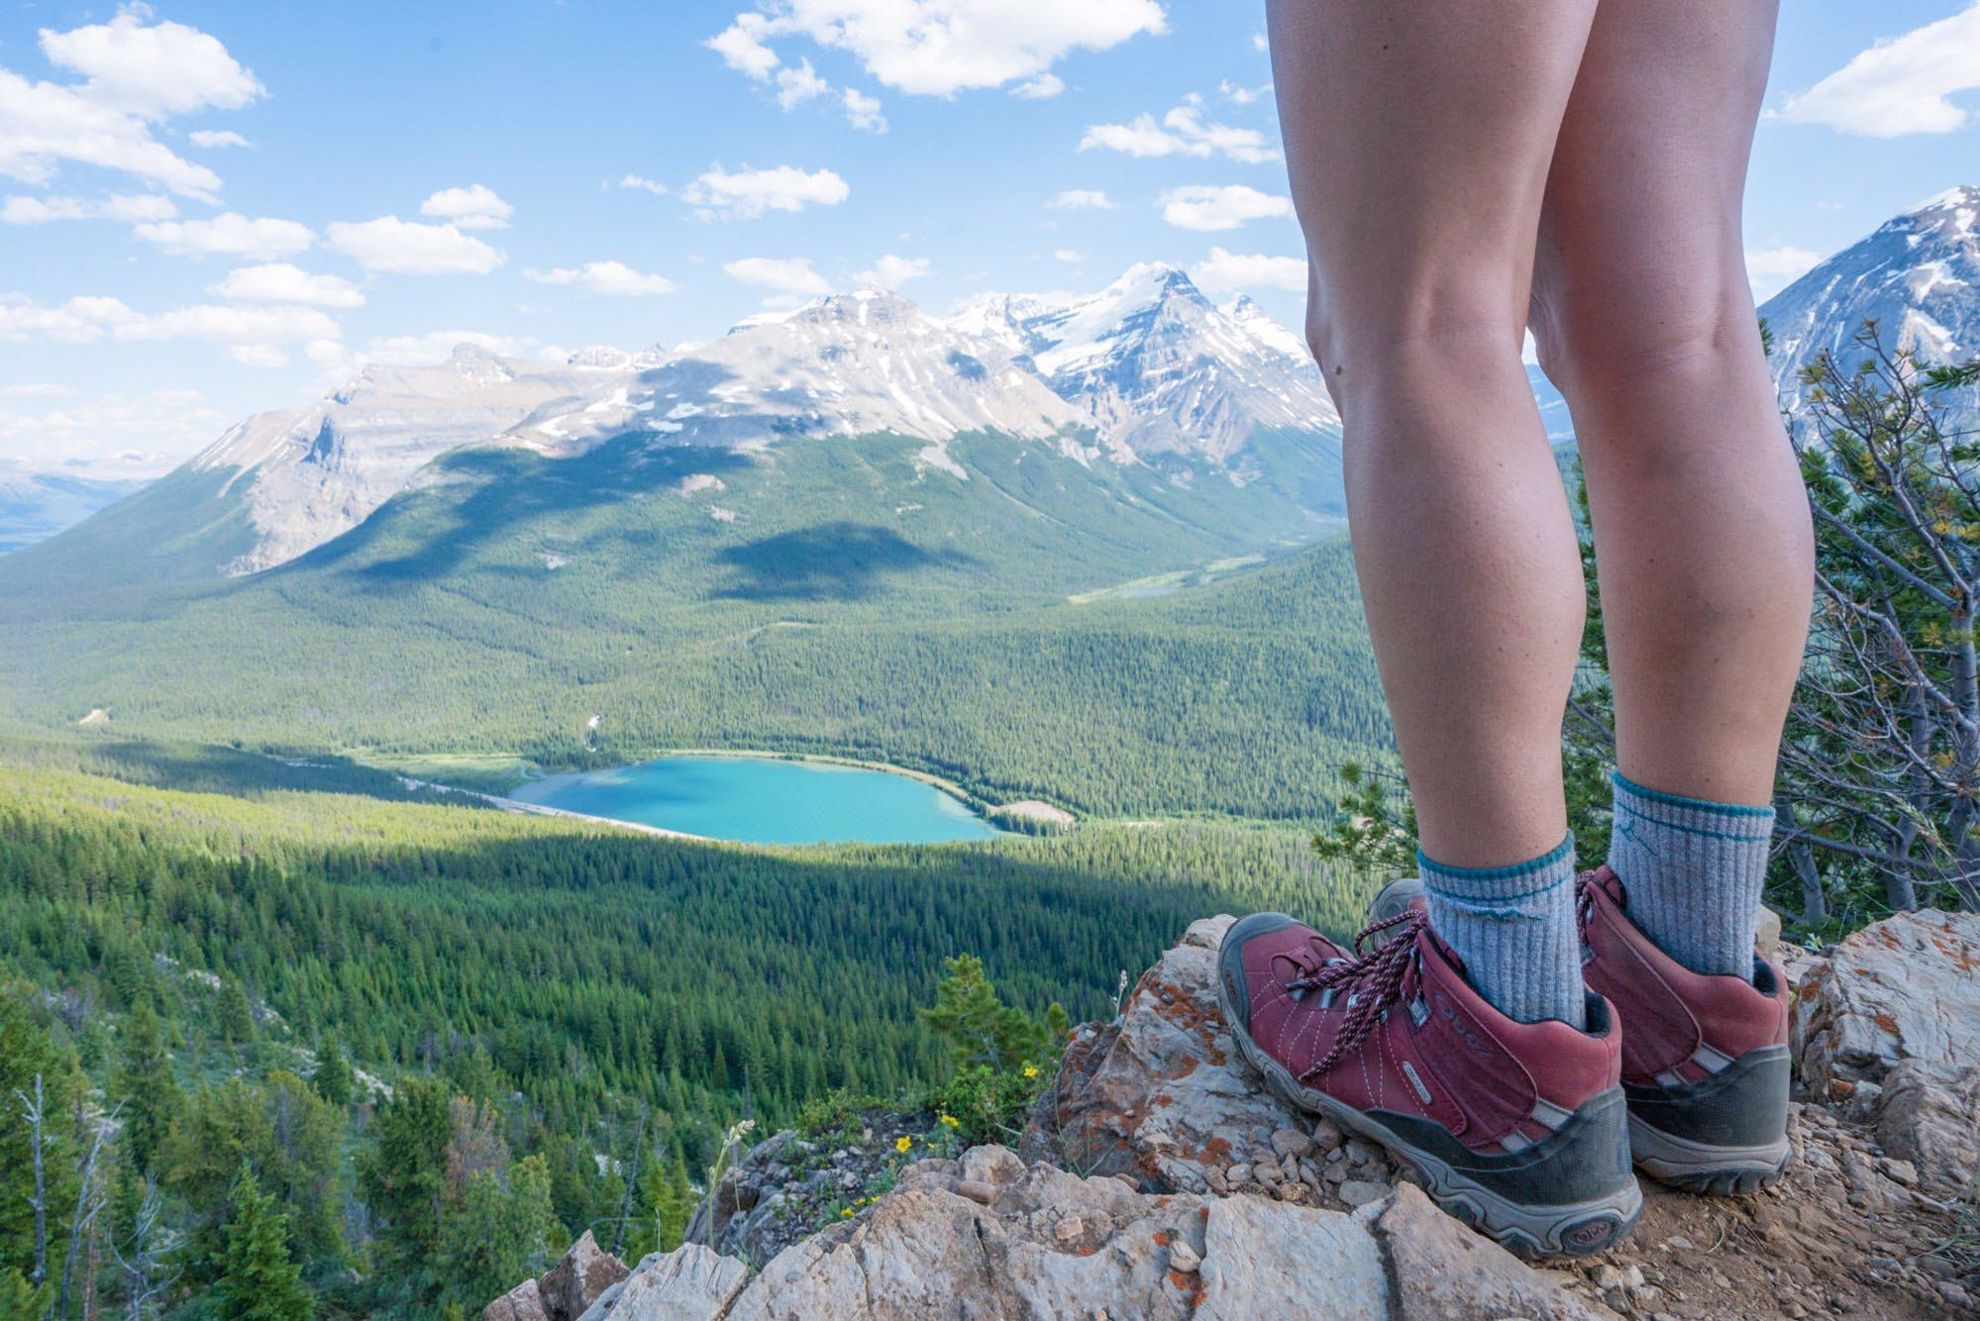 Foot care on hiking and backpacking trips